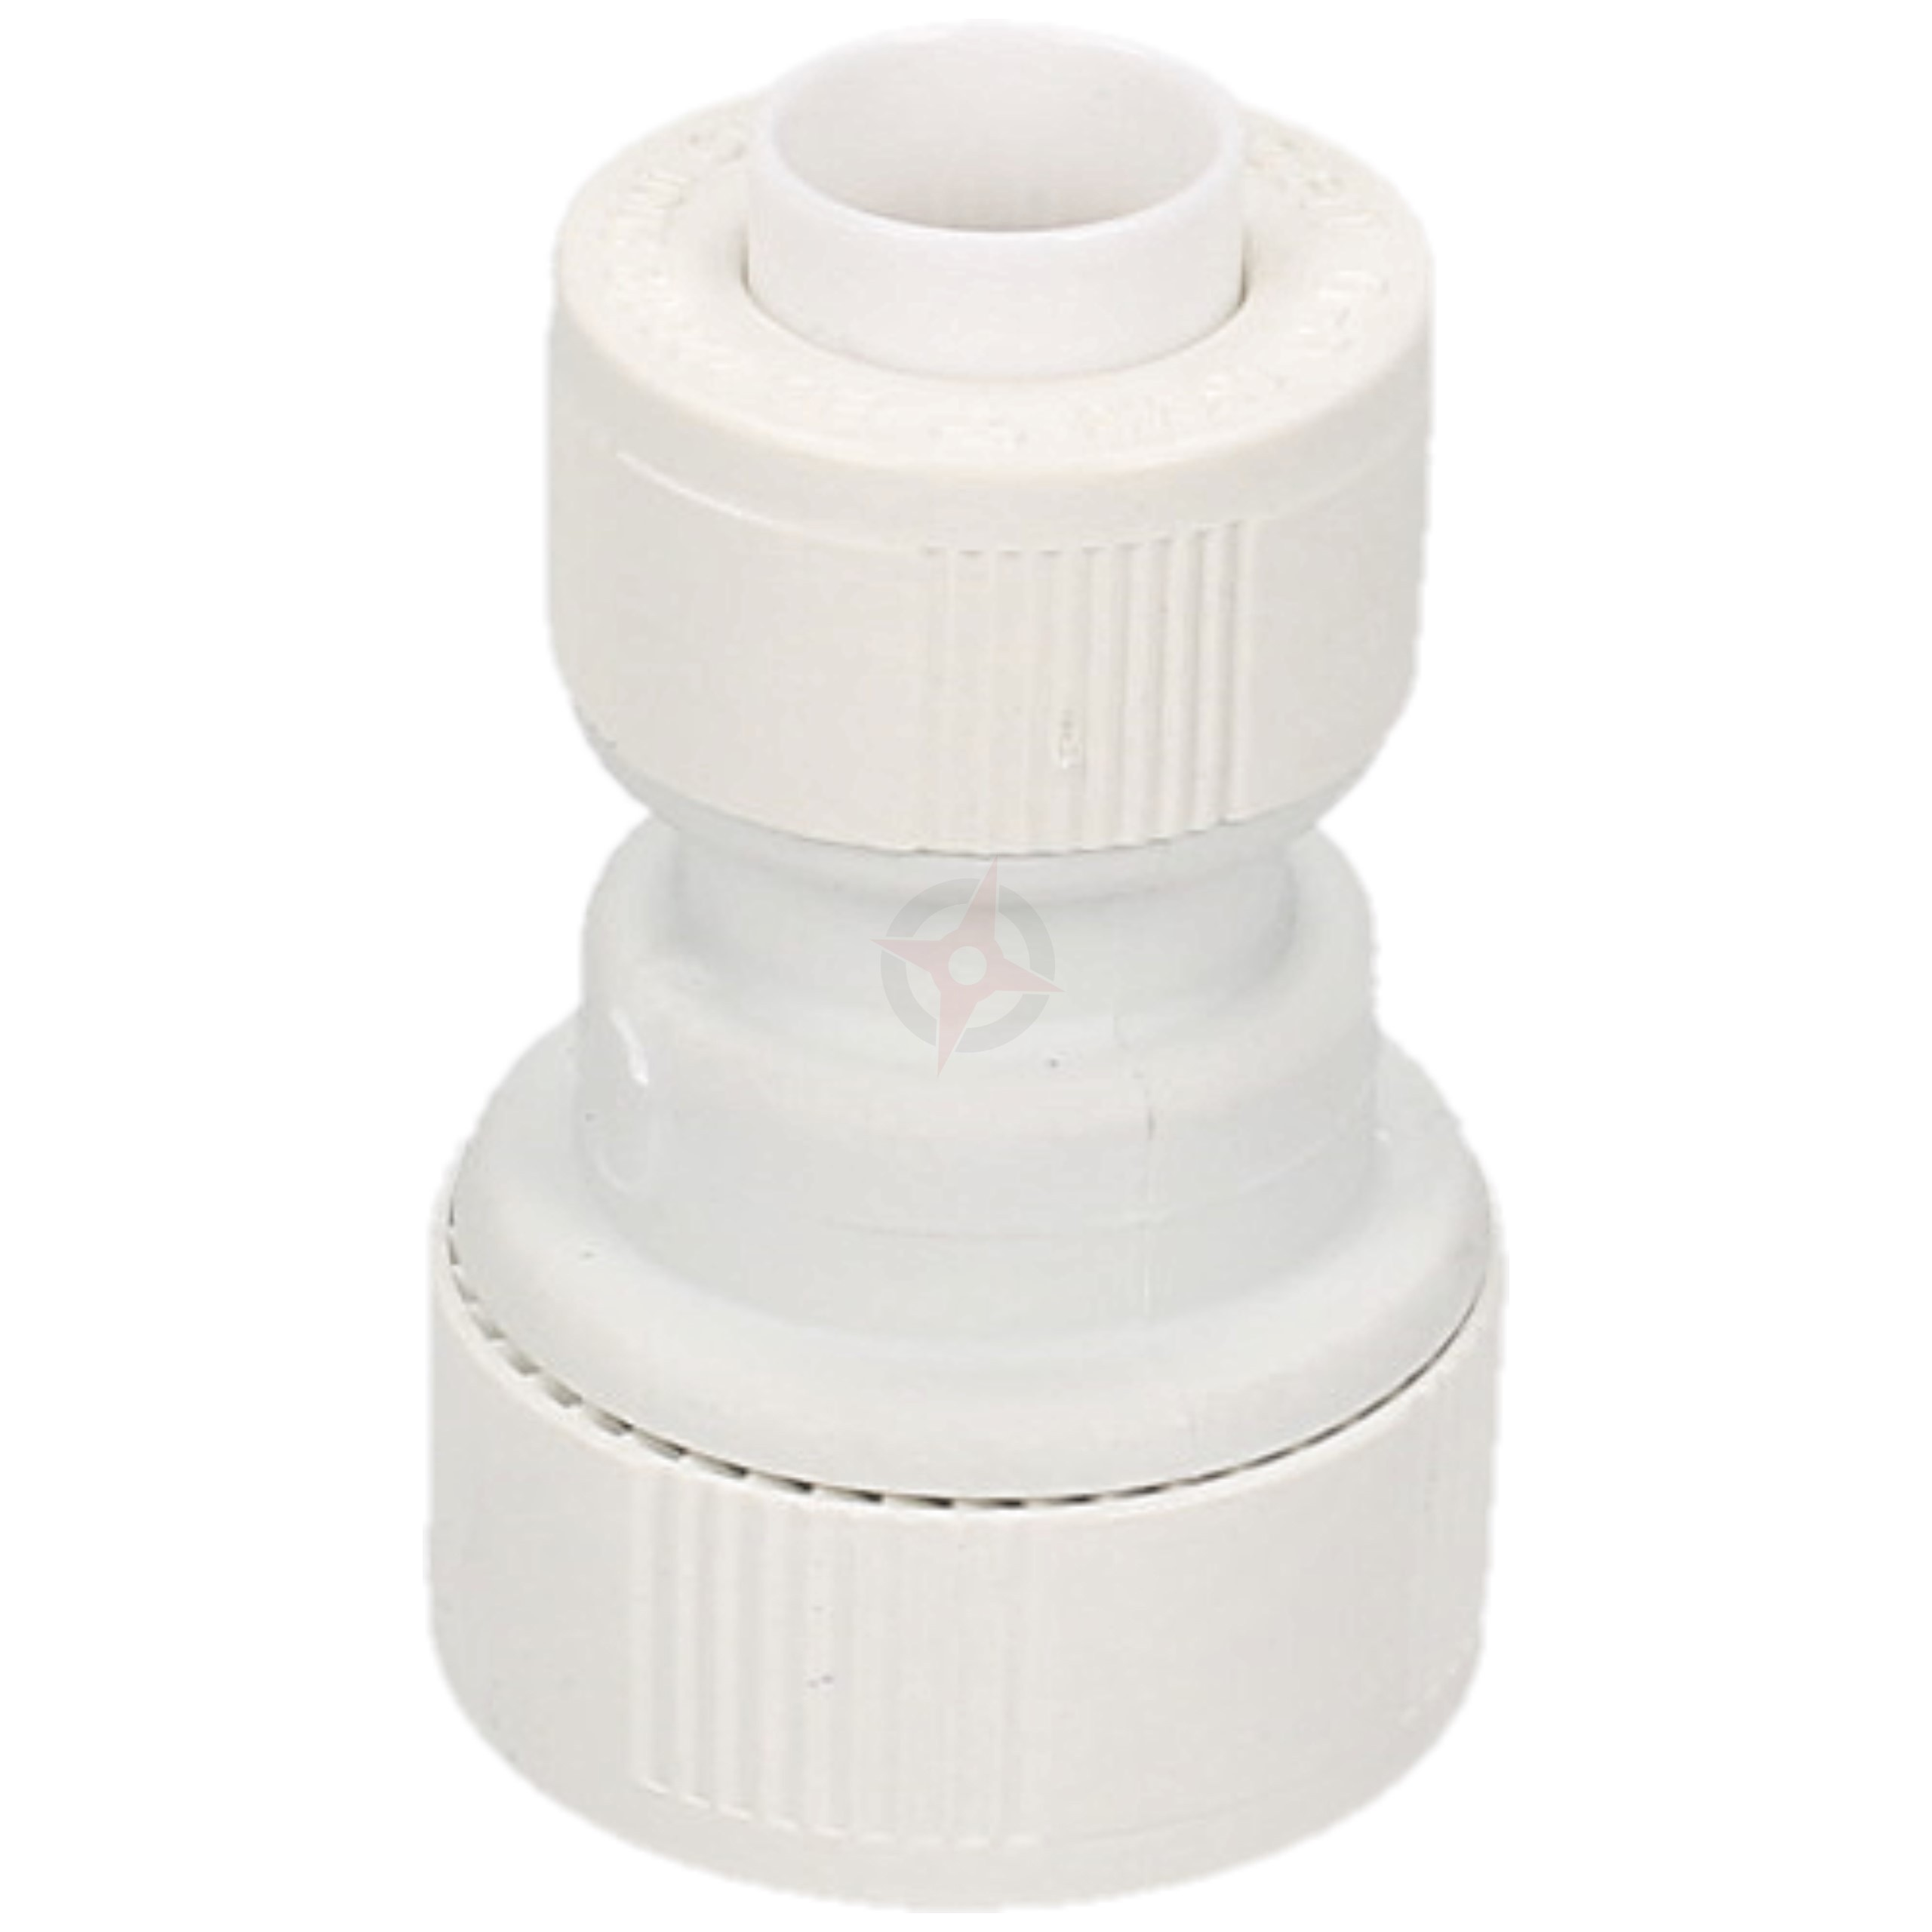 Whitespeed Push Fit 22mm x 15mm  Reducing Coupler